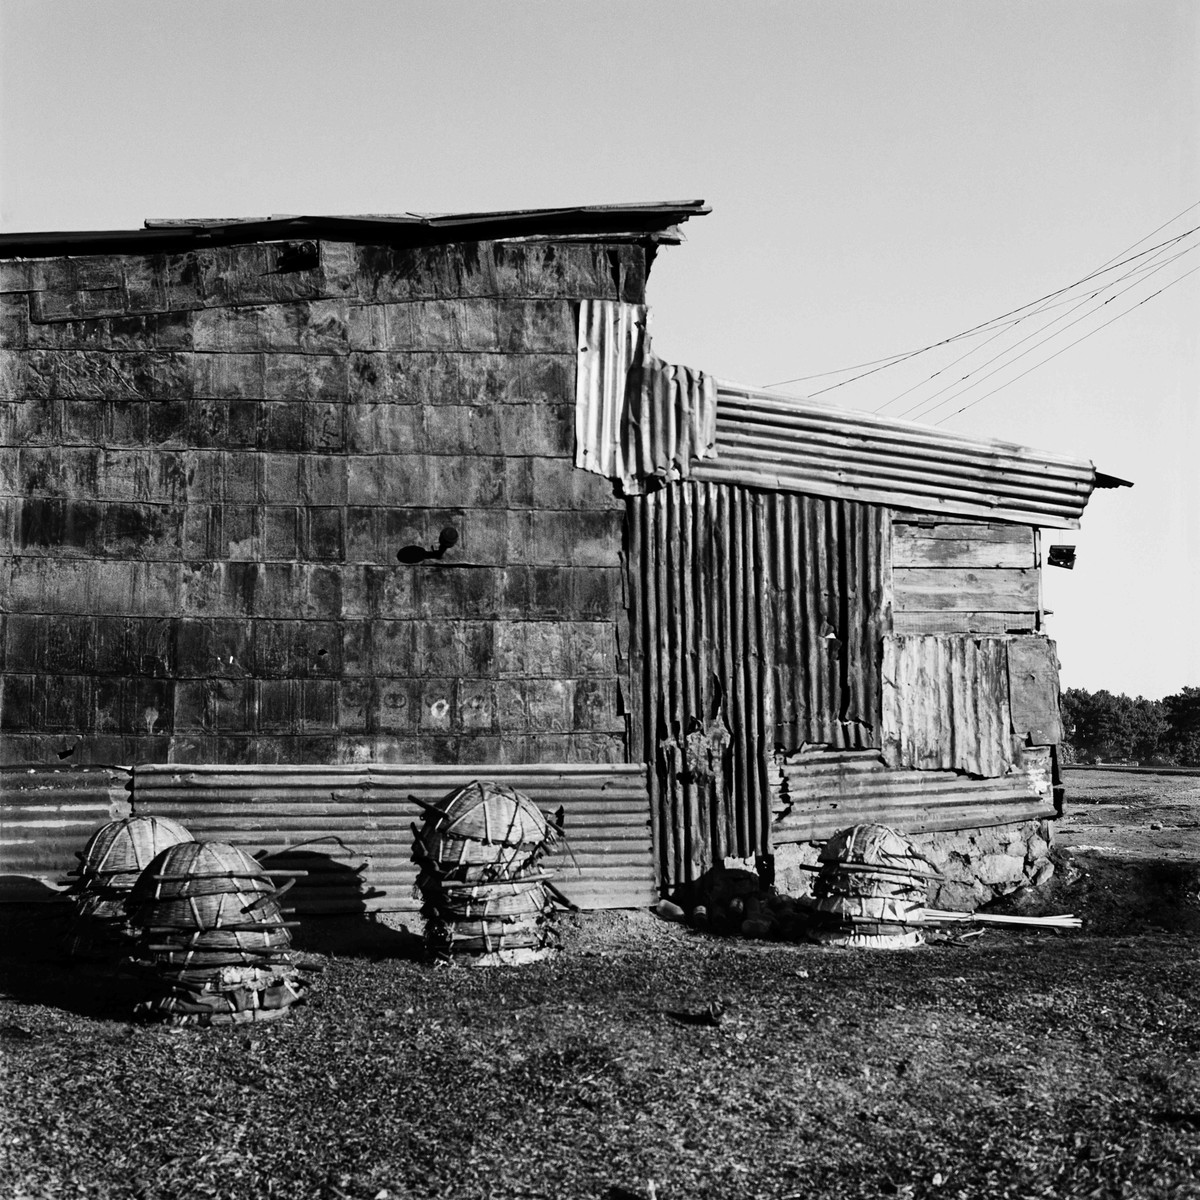 Outpost: Untitled 7 by Samar Singh Jodha, Image Photograph, Digital Print on Archival Paper, Gray color